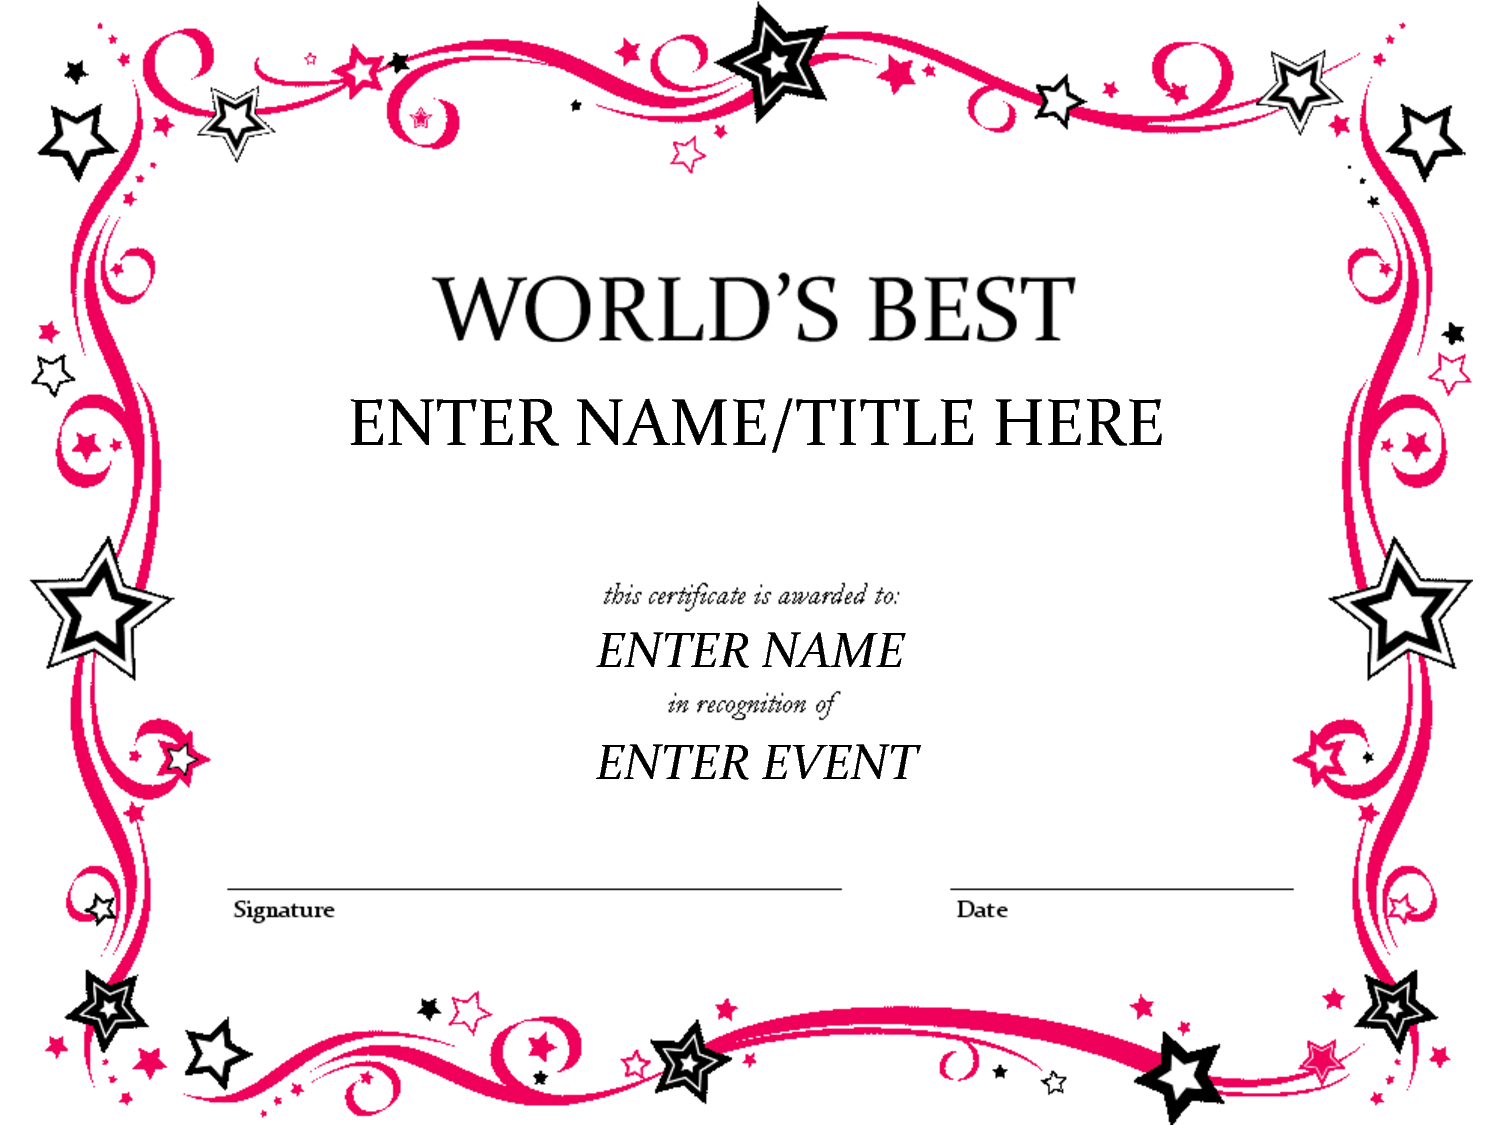 Free funny award certificates templates worlds best custom award free funny award certificates templates worlds best custom award certificate template yadclub Gallery